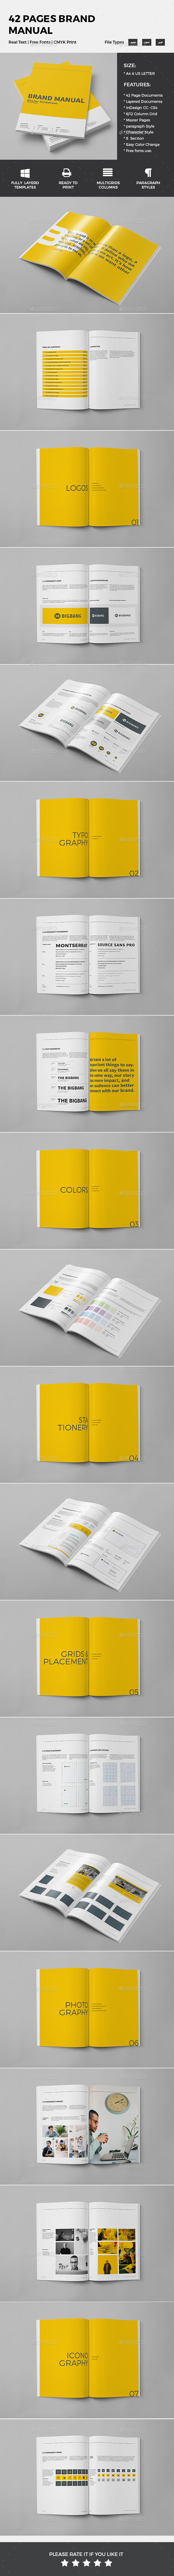 Brand Manual Template InDesign INDD. Download here: http ...